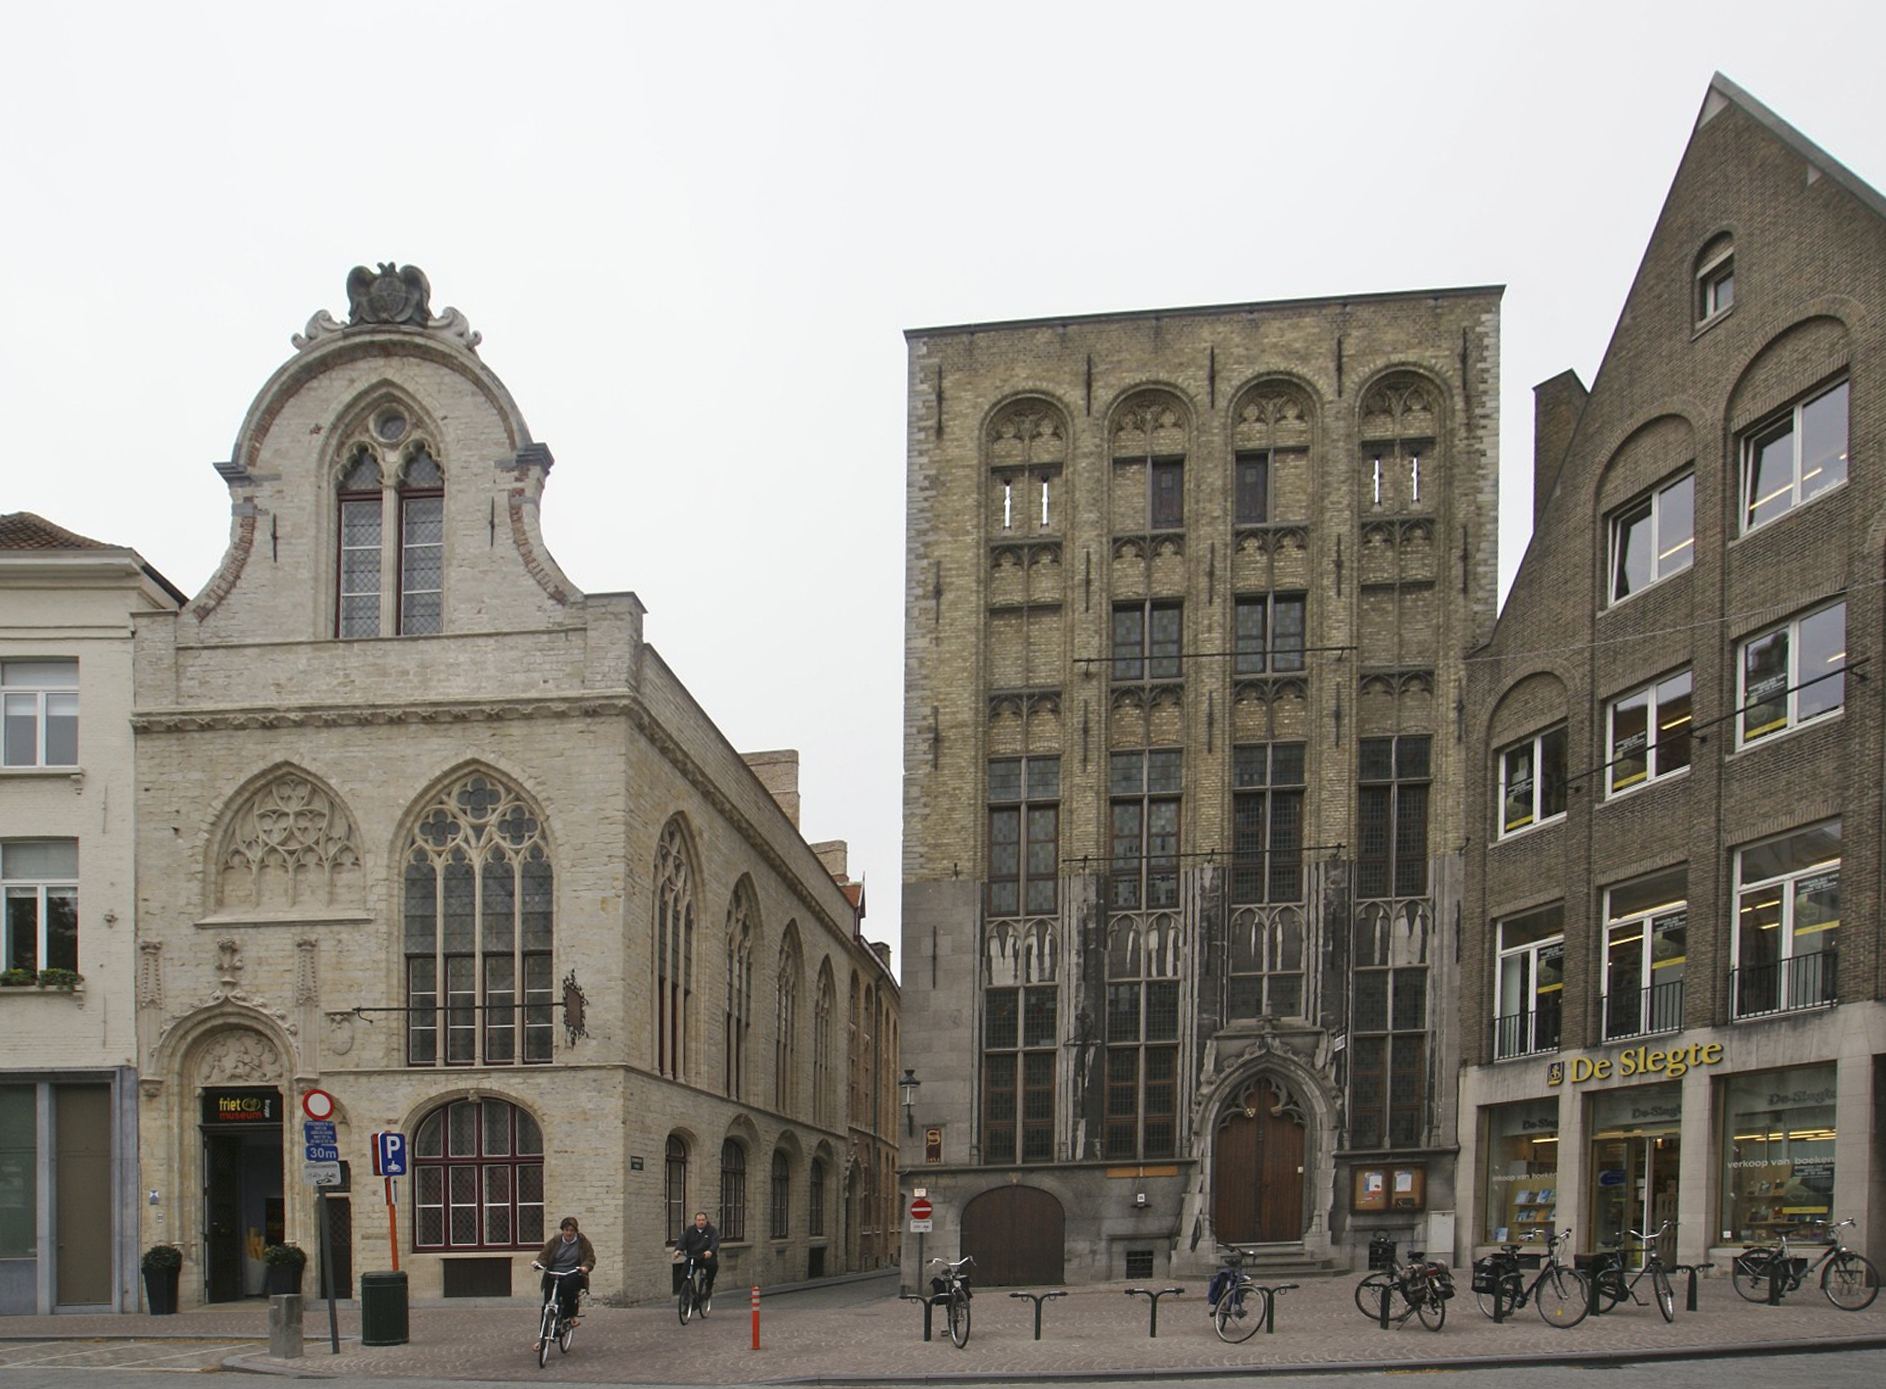 Wool market (left) and the first stock exchange in the world (right), Bruges, Belgium.